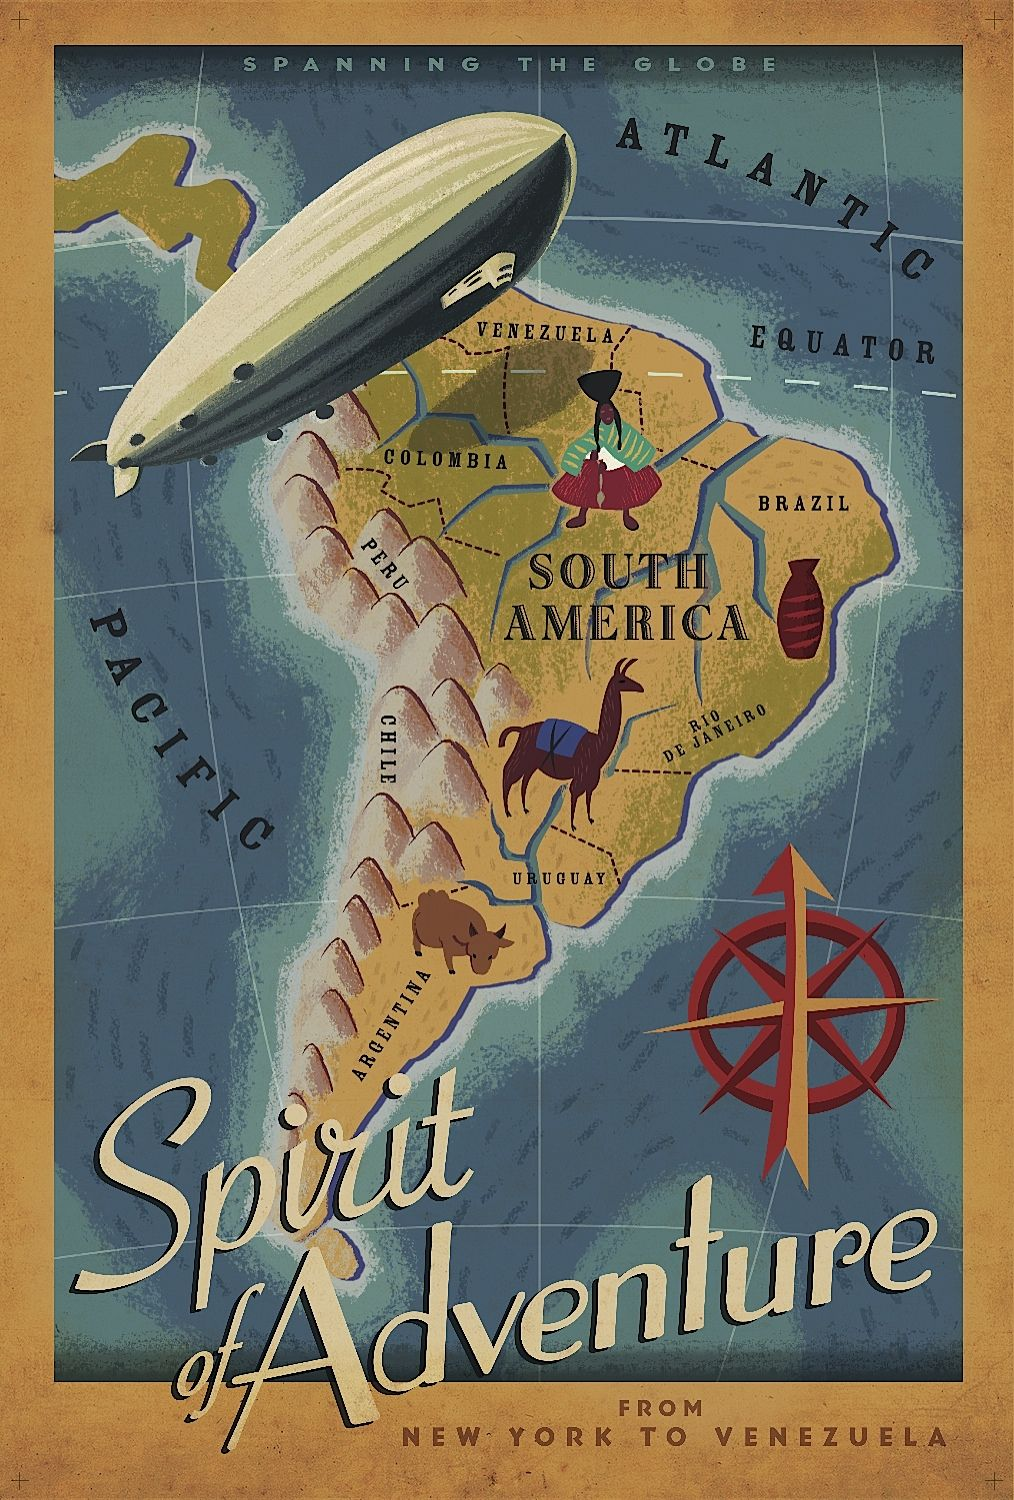 Sudamrica cartel vintage de la peli up por paul conrad spirit of adventure travel poster map blimp exiting south america brand new will ship in a tube multiple item purchases are combined the next day and gumiabroncs Images